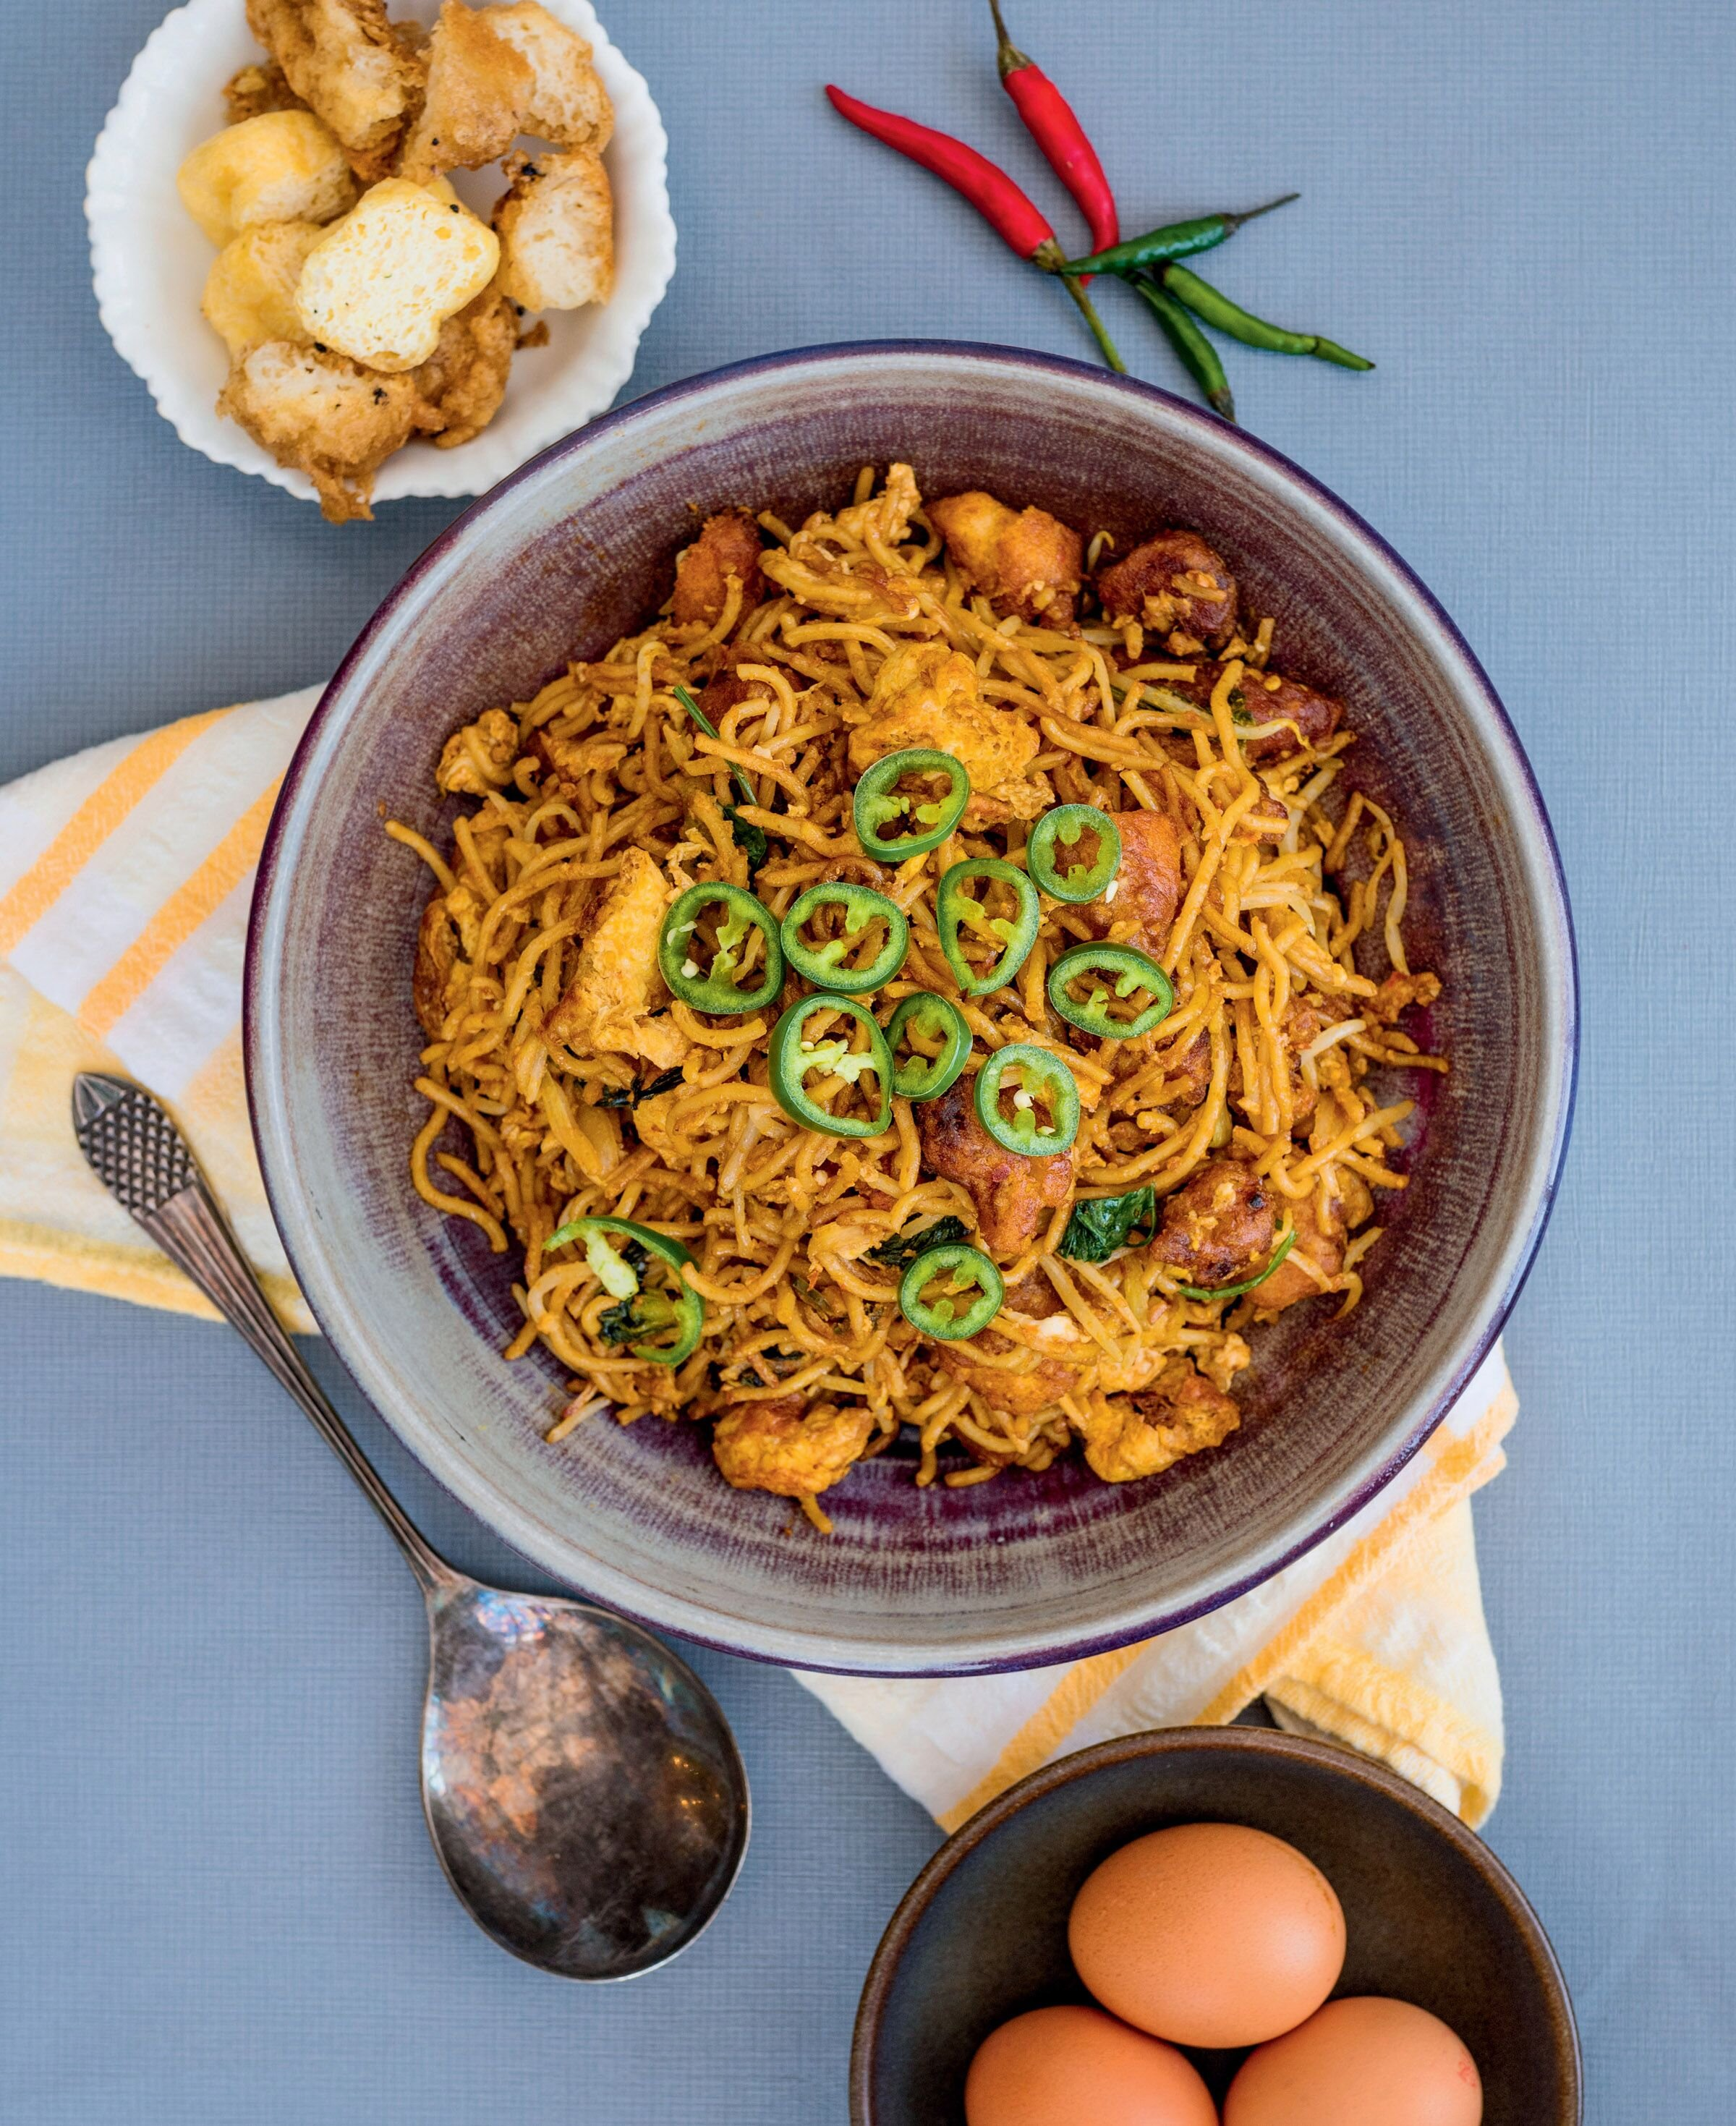 Zaleha Olpin's recipe for Mee Goreng Mamak is ideal with a cup of sweet milky tea.